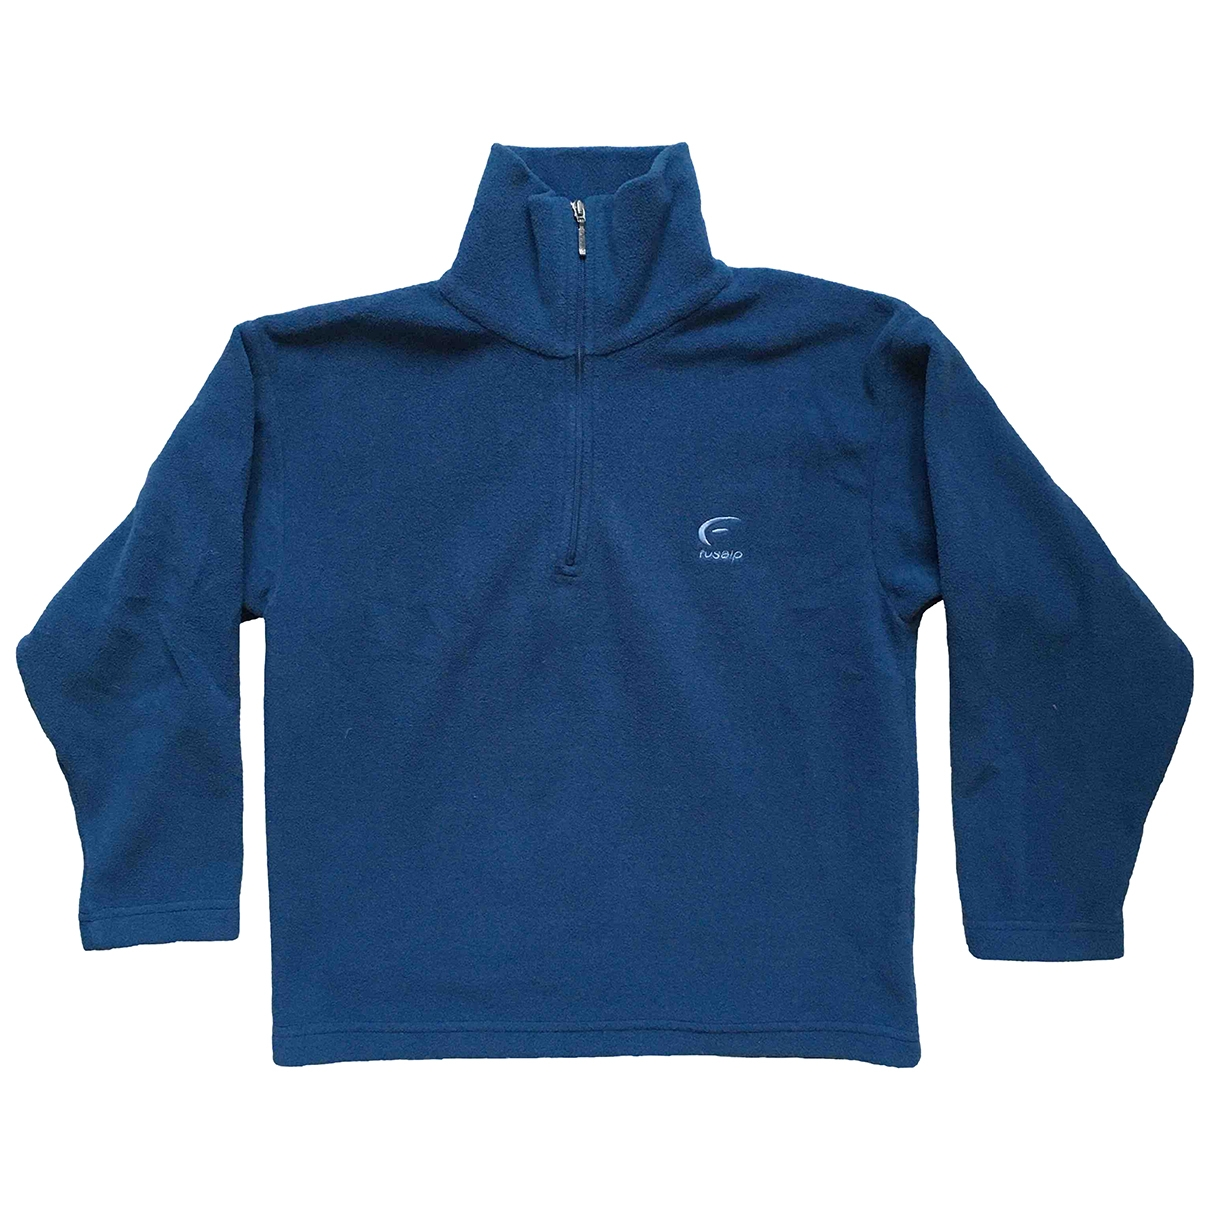 Fusalp \N Blue Knitwear for Kids 8 years - up to 128cm FR